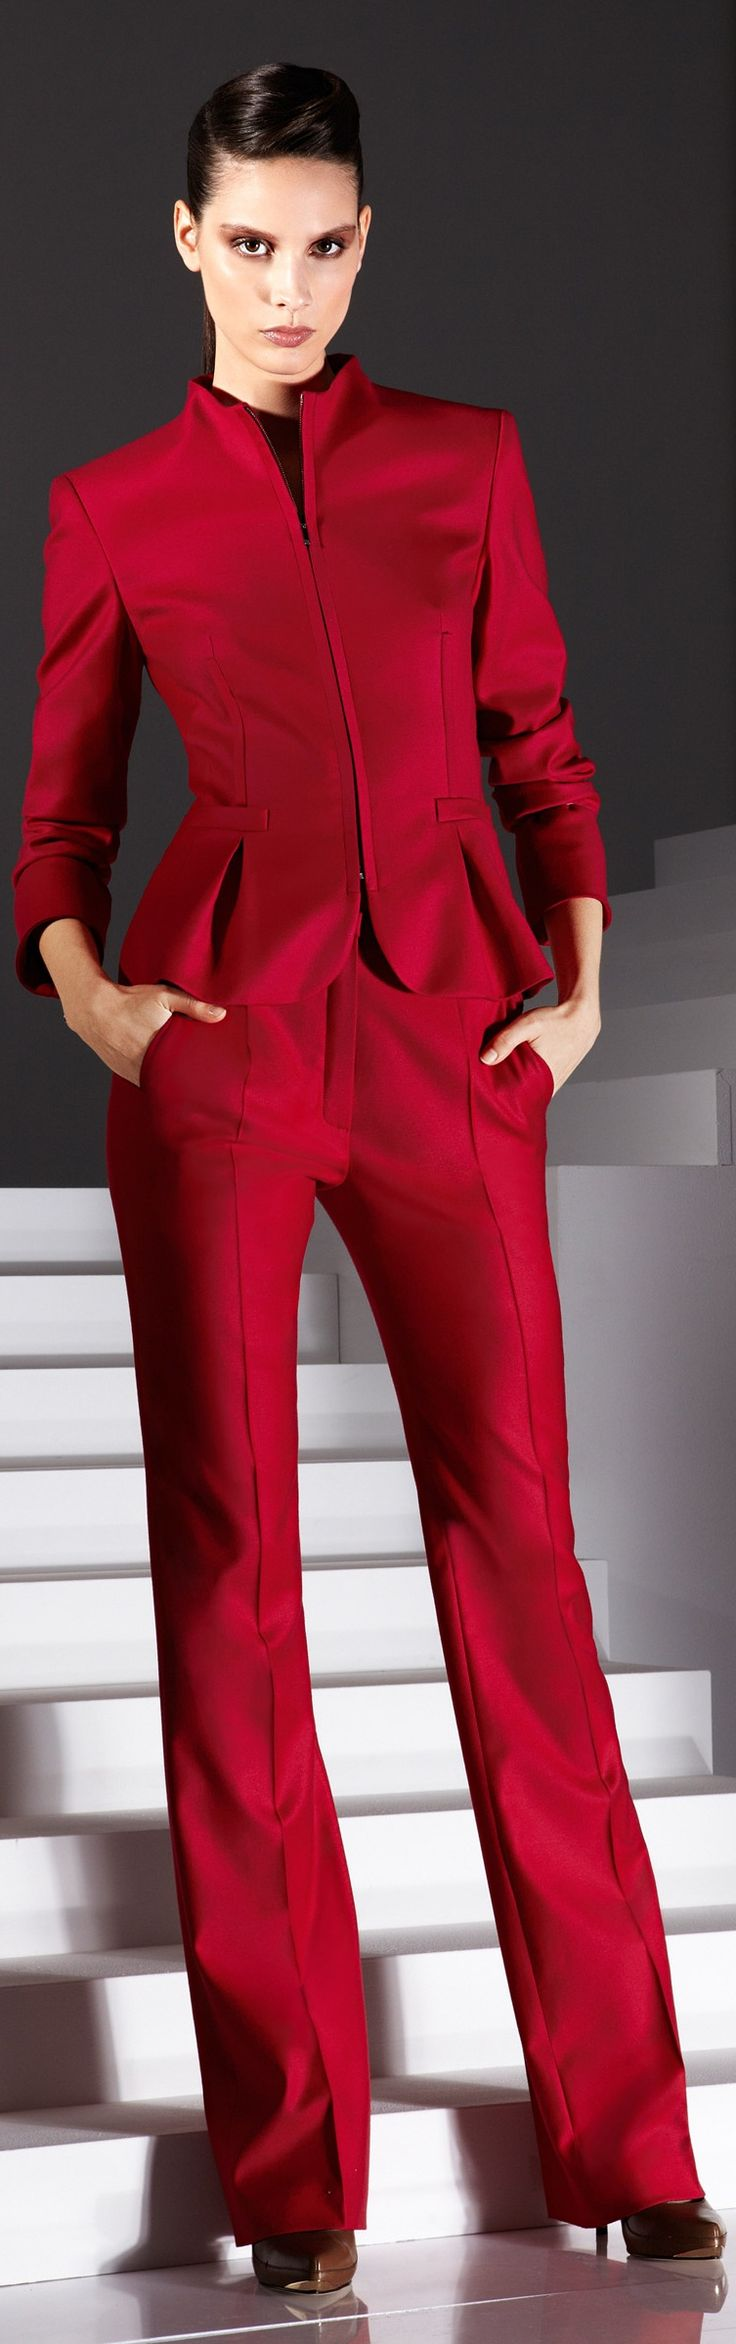 An alternative look for this beautiful Escada red suit is to couple it with a Classic Black & White V Square, CHECK IT OUT @SCARF-ART.COM!